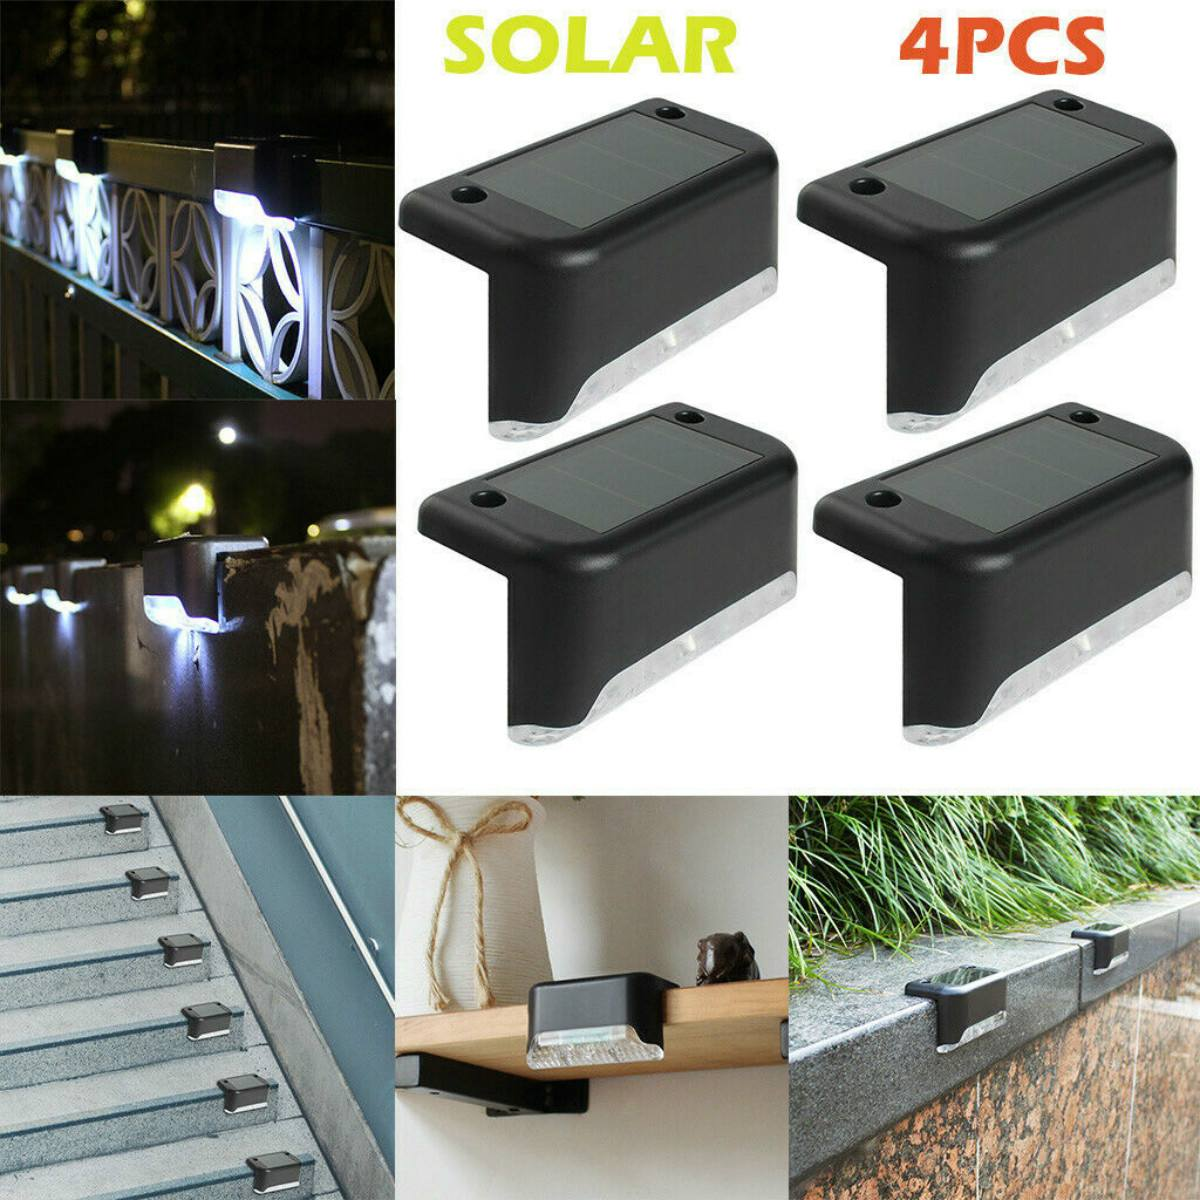 4Pcs/Set Solar Fence Post Lights Outdoor Yard Fence Security Wall Lamp Dark Sensing Waterproof Solar Light 8x4.5x4cm